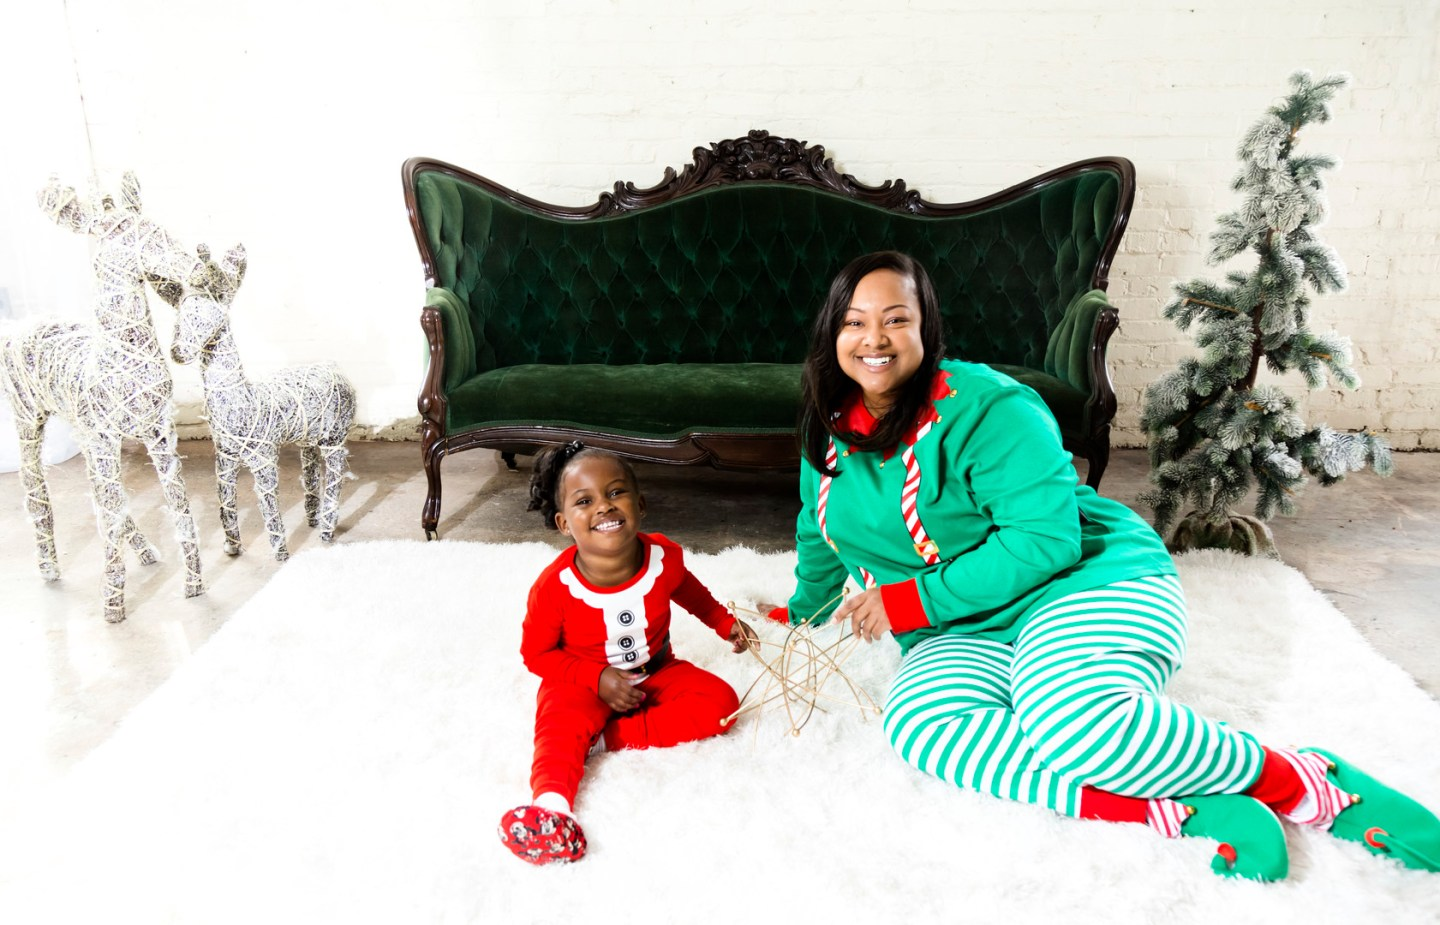 3n7766nw3sdams5cxg64_big Mommy & Me Christmas PJ Session in Greensboro, NC